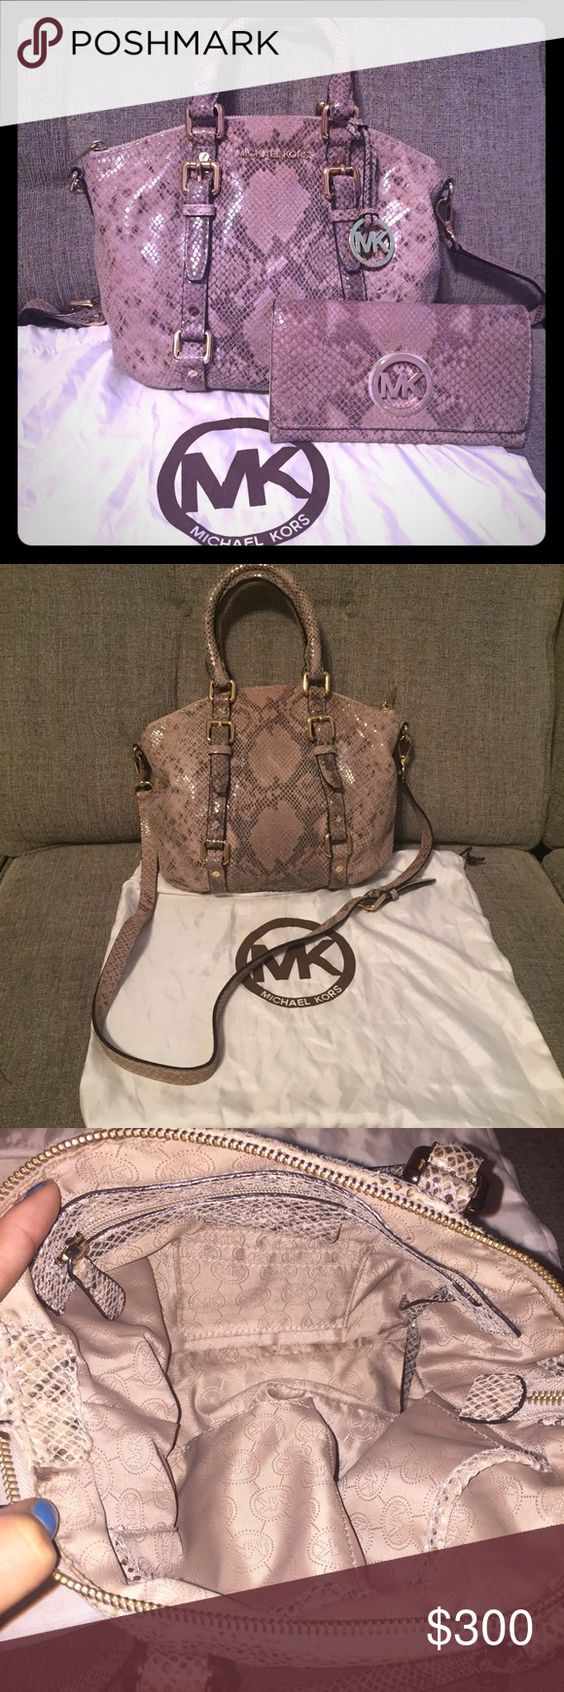 MK snakeskin bag and matching wallet up for trade Excellent used condition Micheal Kors snakeskin leather bag with matching continental wallet. Removable shoulder strap. Gold hard wear. The wallet is the long Micheal Kors wallet, it's the size of a dollar bill. This set is just to die for. Trade value 575$ Michael Kors Bags Shoulder Bags